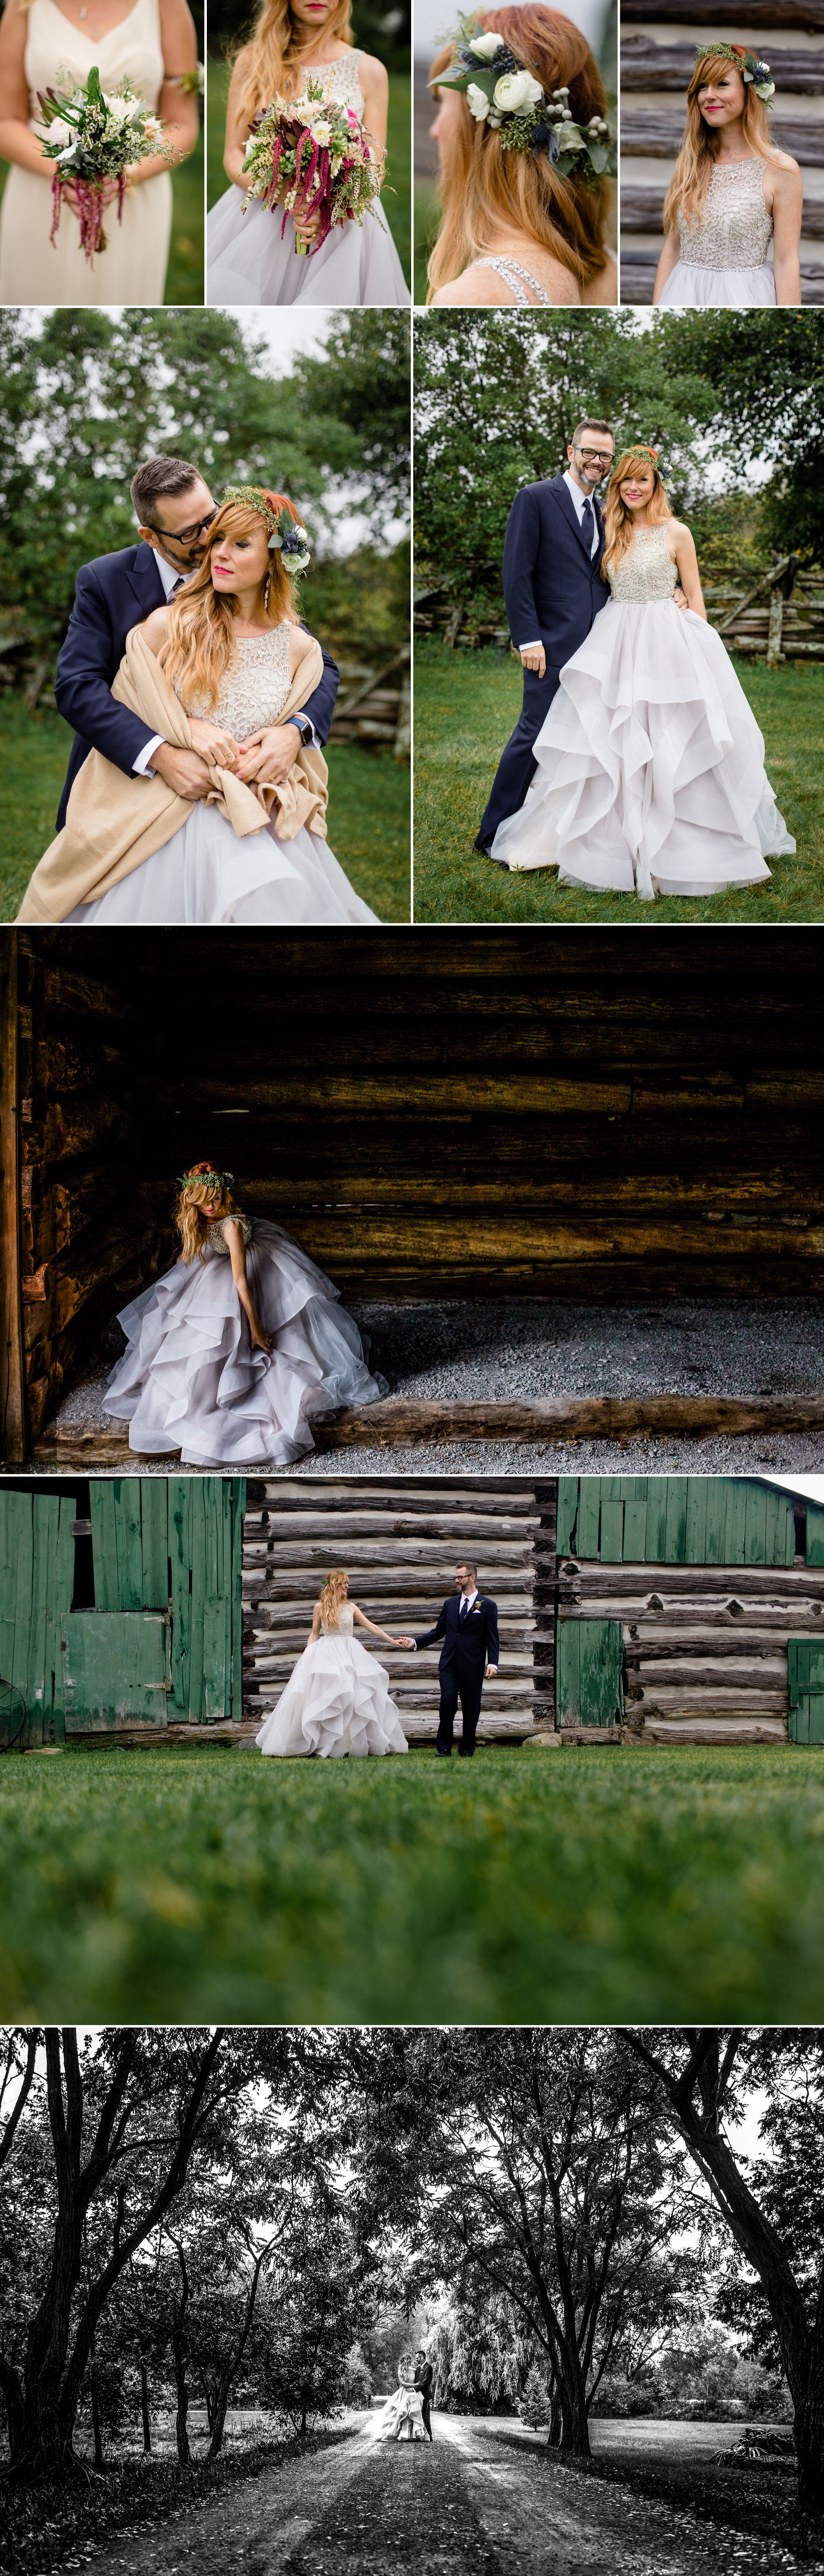 Bride and groom portraits at Stonefields Heritage Farm